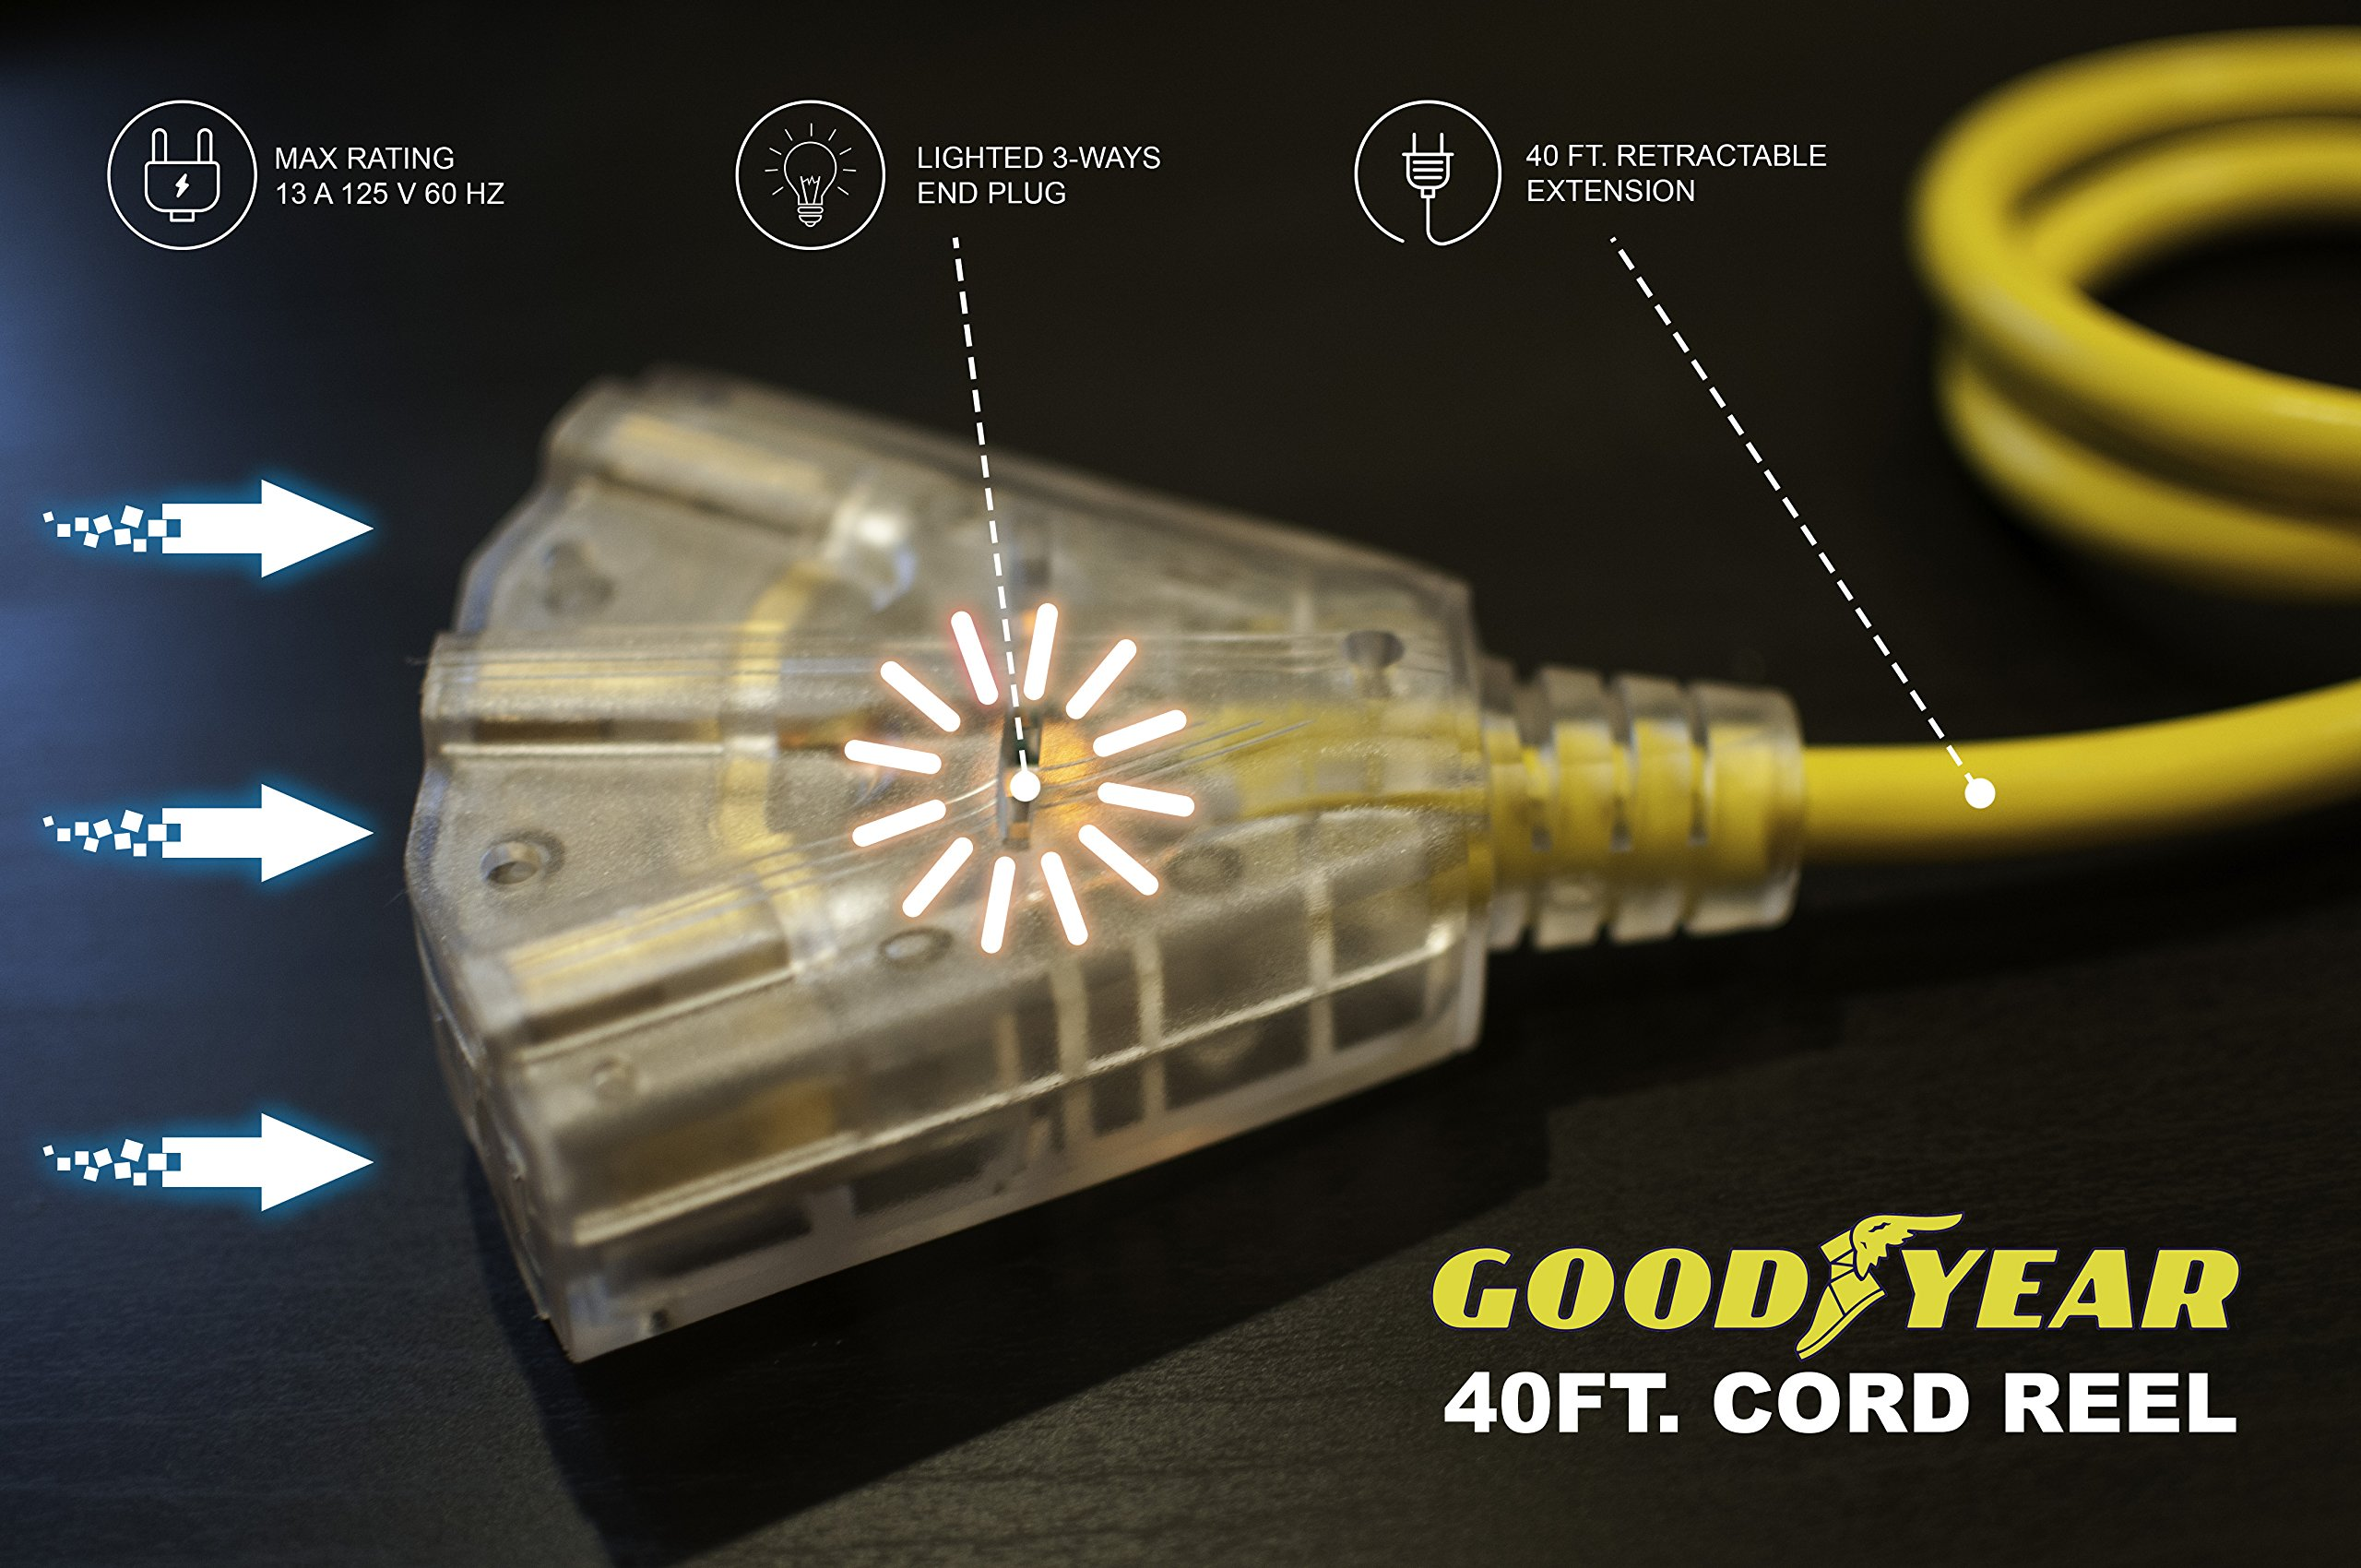 Goodyear Extension Cord Reel Heavy Duty, 40 ft., 12AWG/3C SJTOW, Triple Tap with LED Lighted Connector by Goodyear (Image #4)